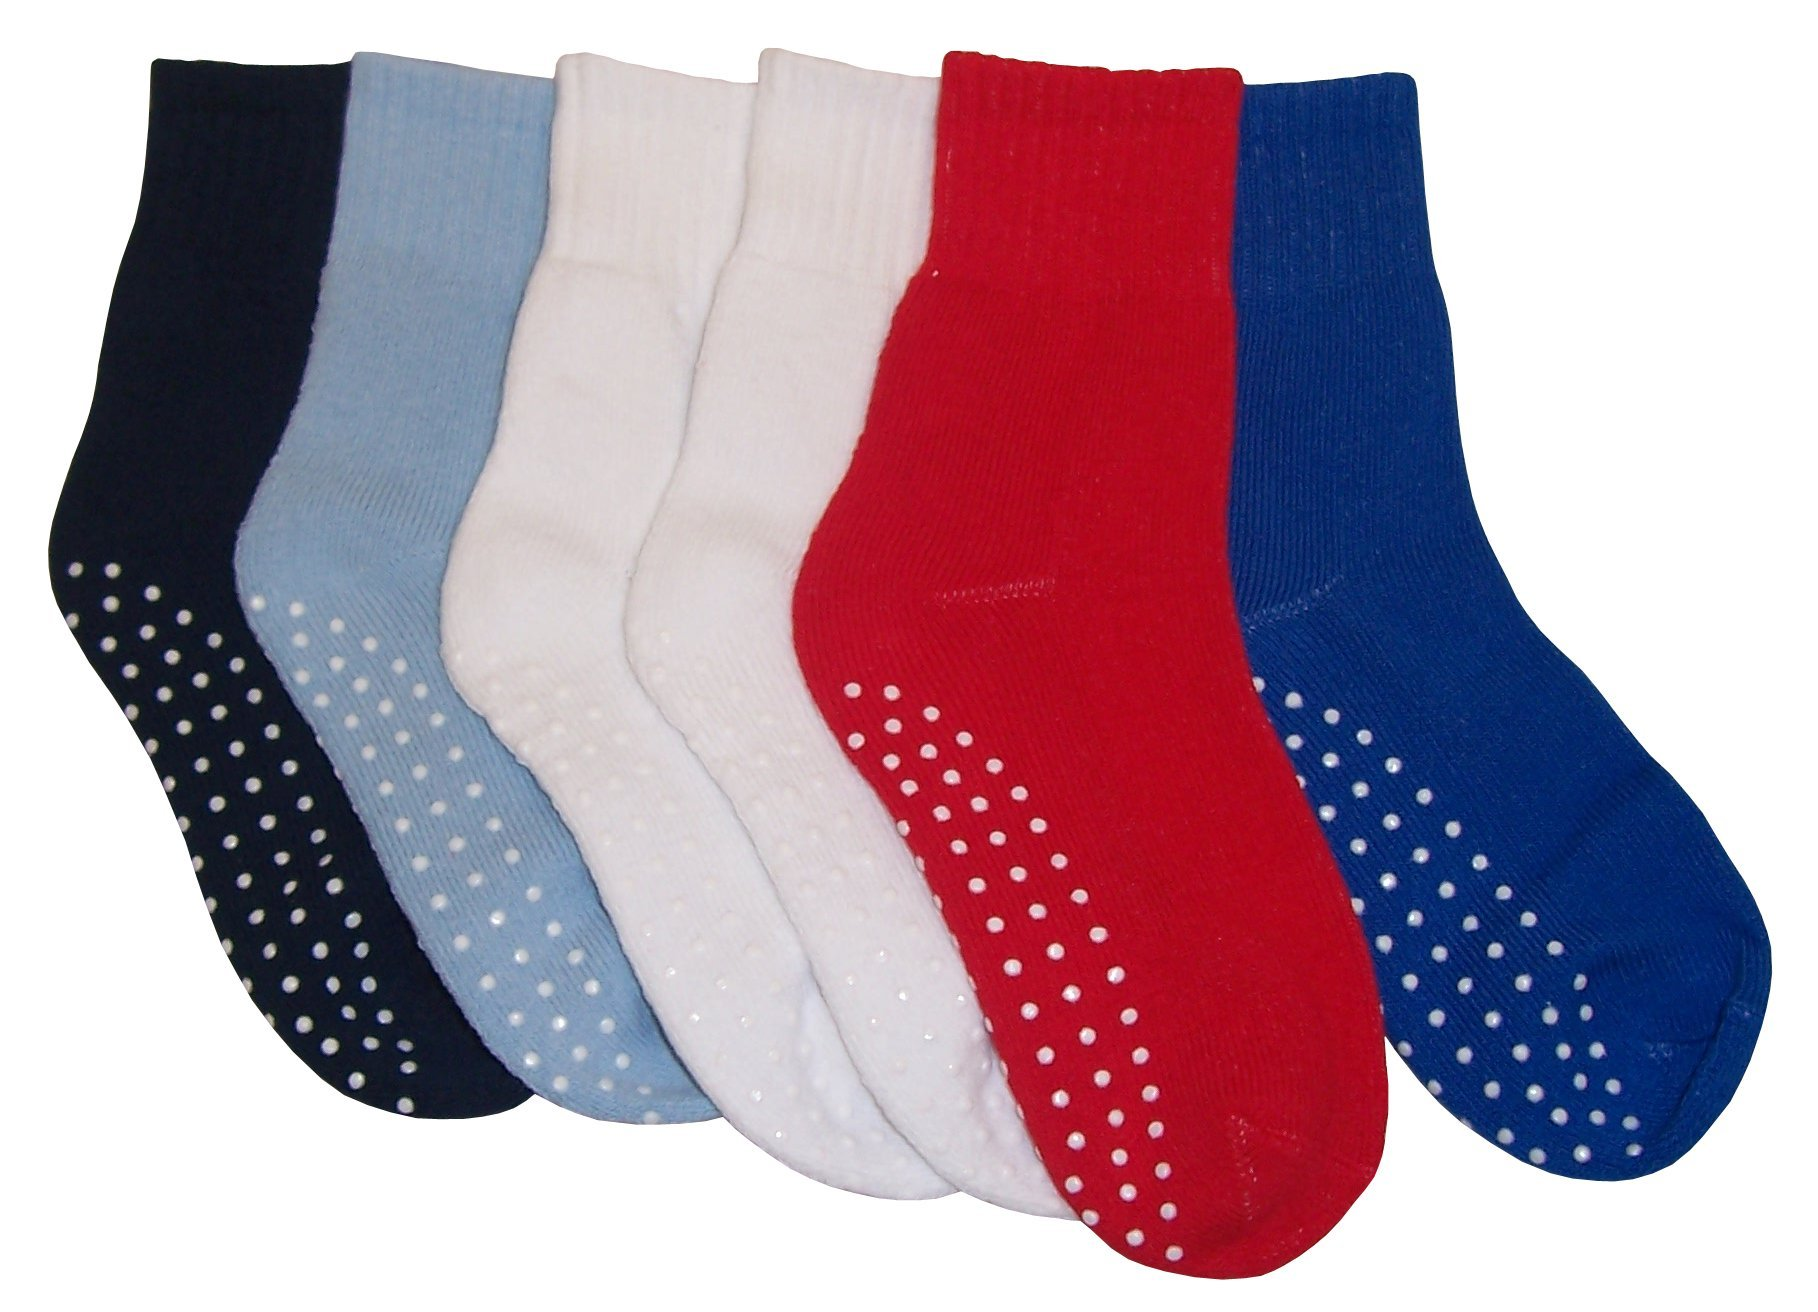 N'Ice Caps Big And Little Boys Cotton/Spandex 2 Tone Crew Sock 6PR Pack (Sock Size 8-9.5, Solid Color with Gripper)